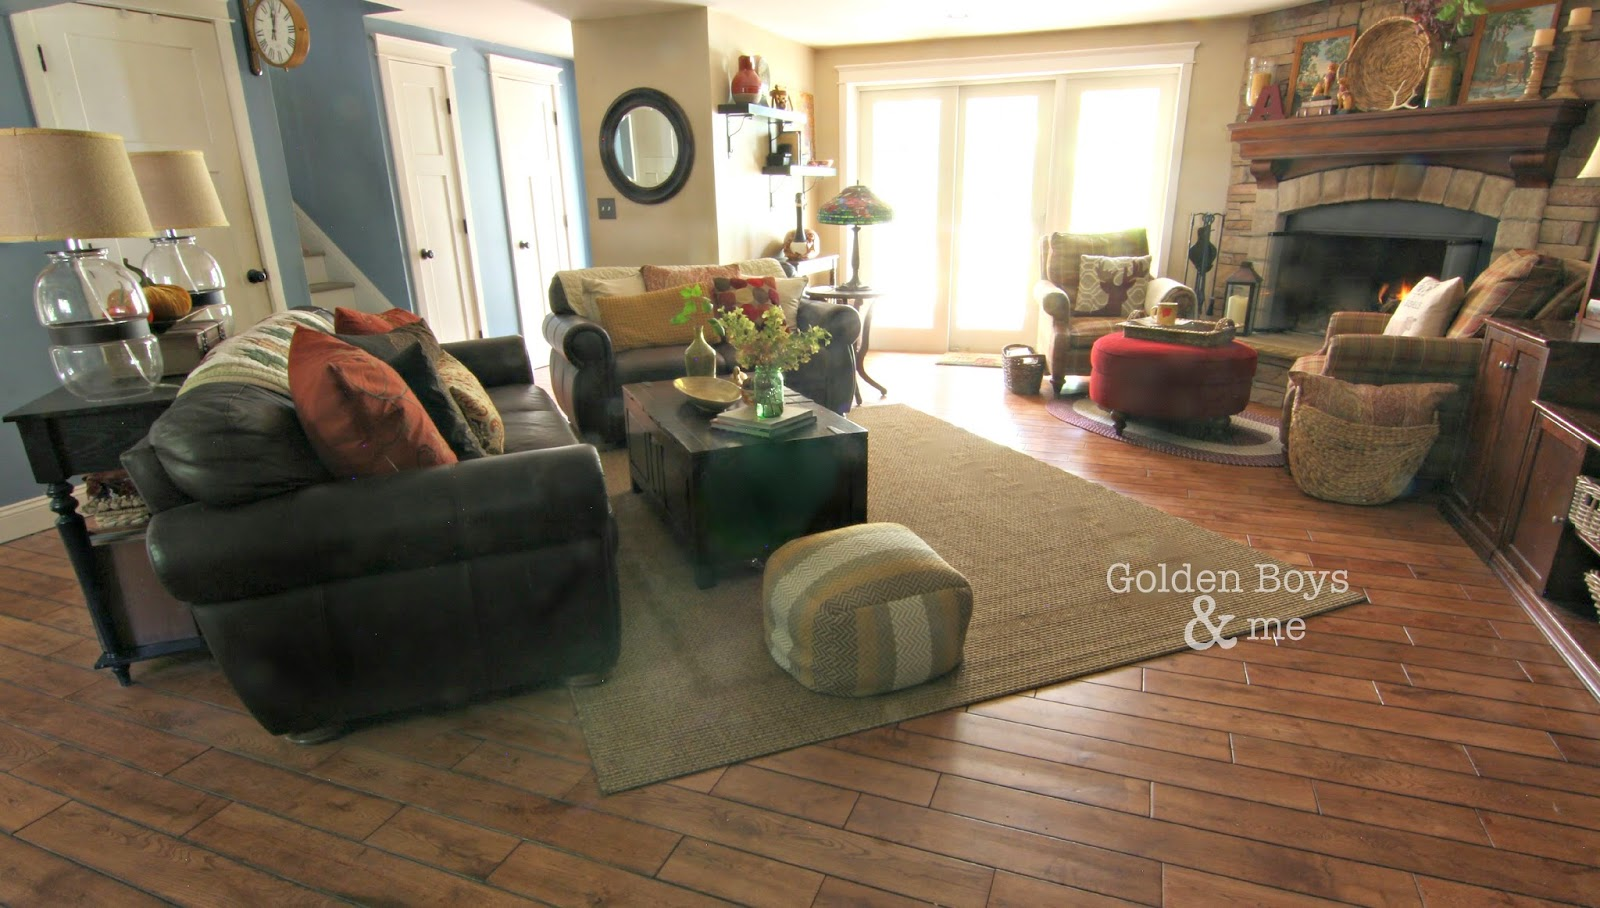 Family room with corner stone fireplace and leather furniture-www.goldenboysandme.com